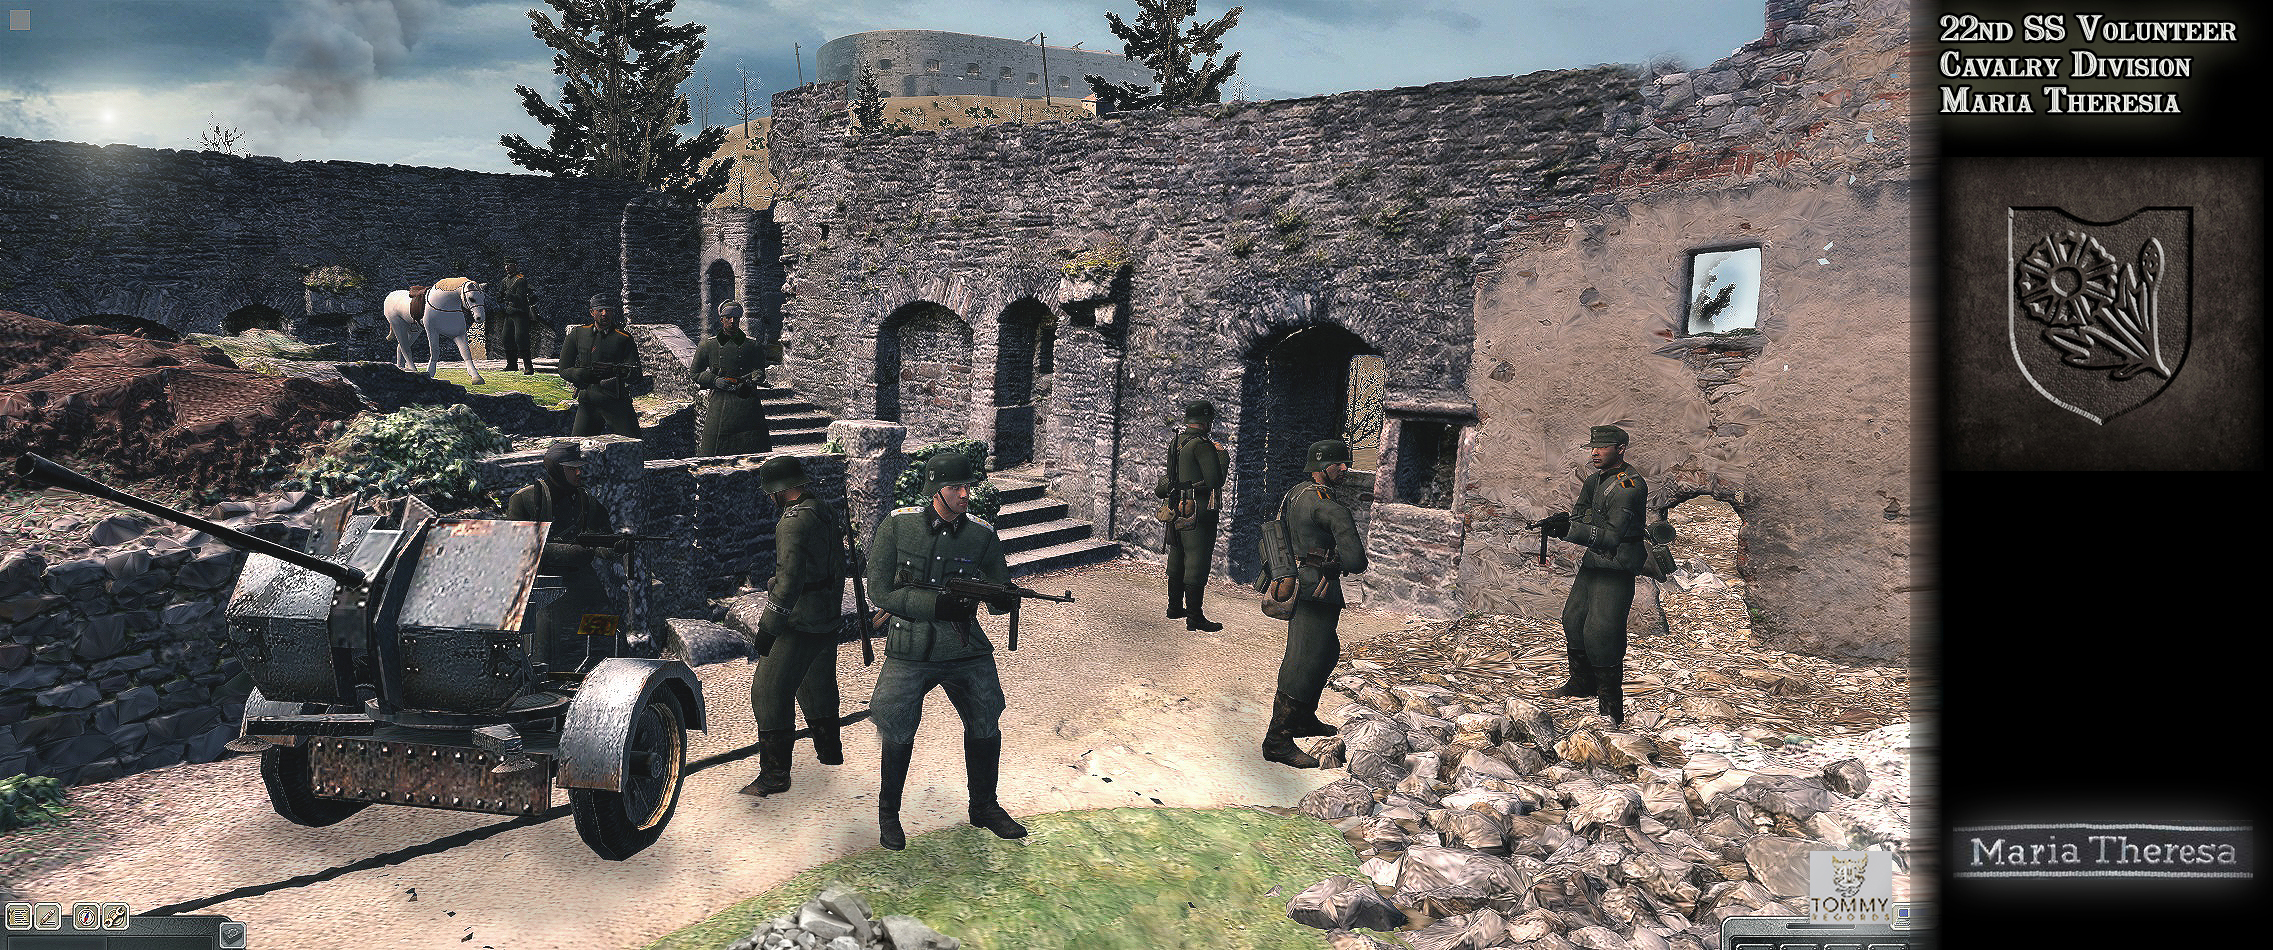 Germans in the Budai vr